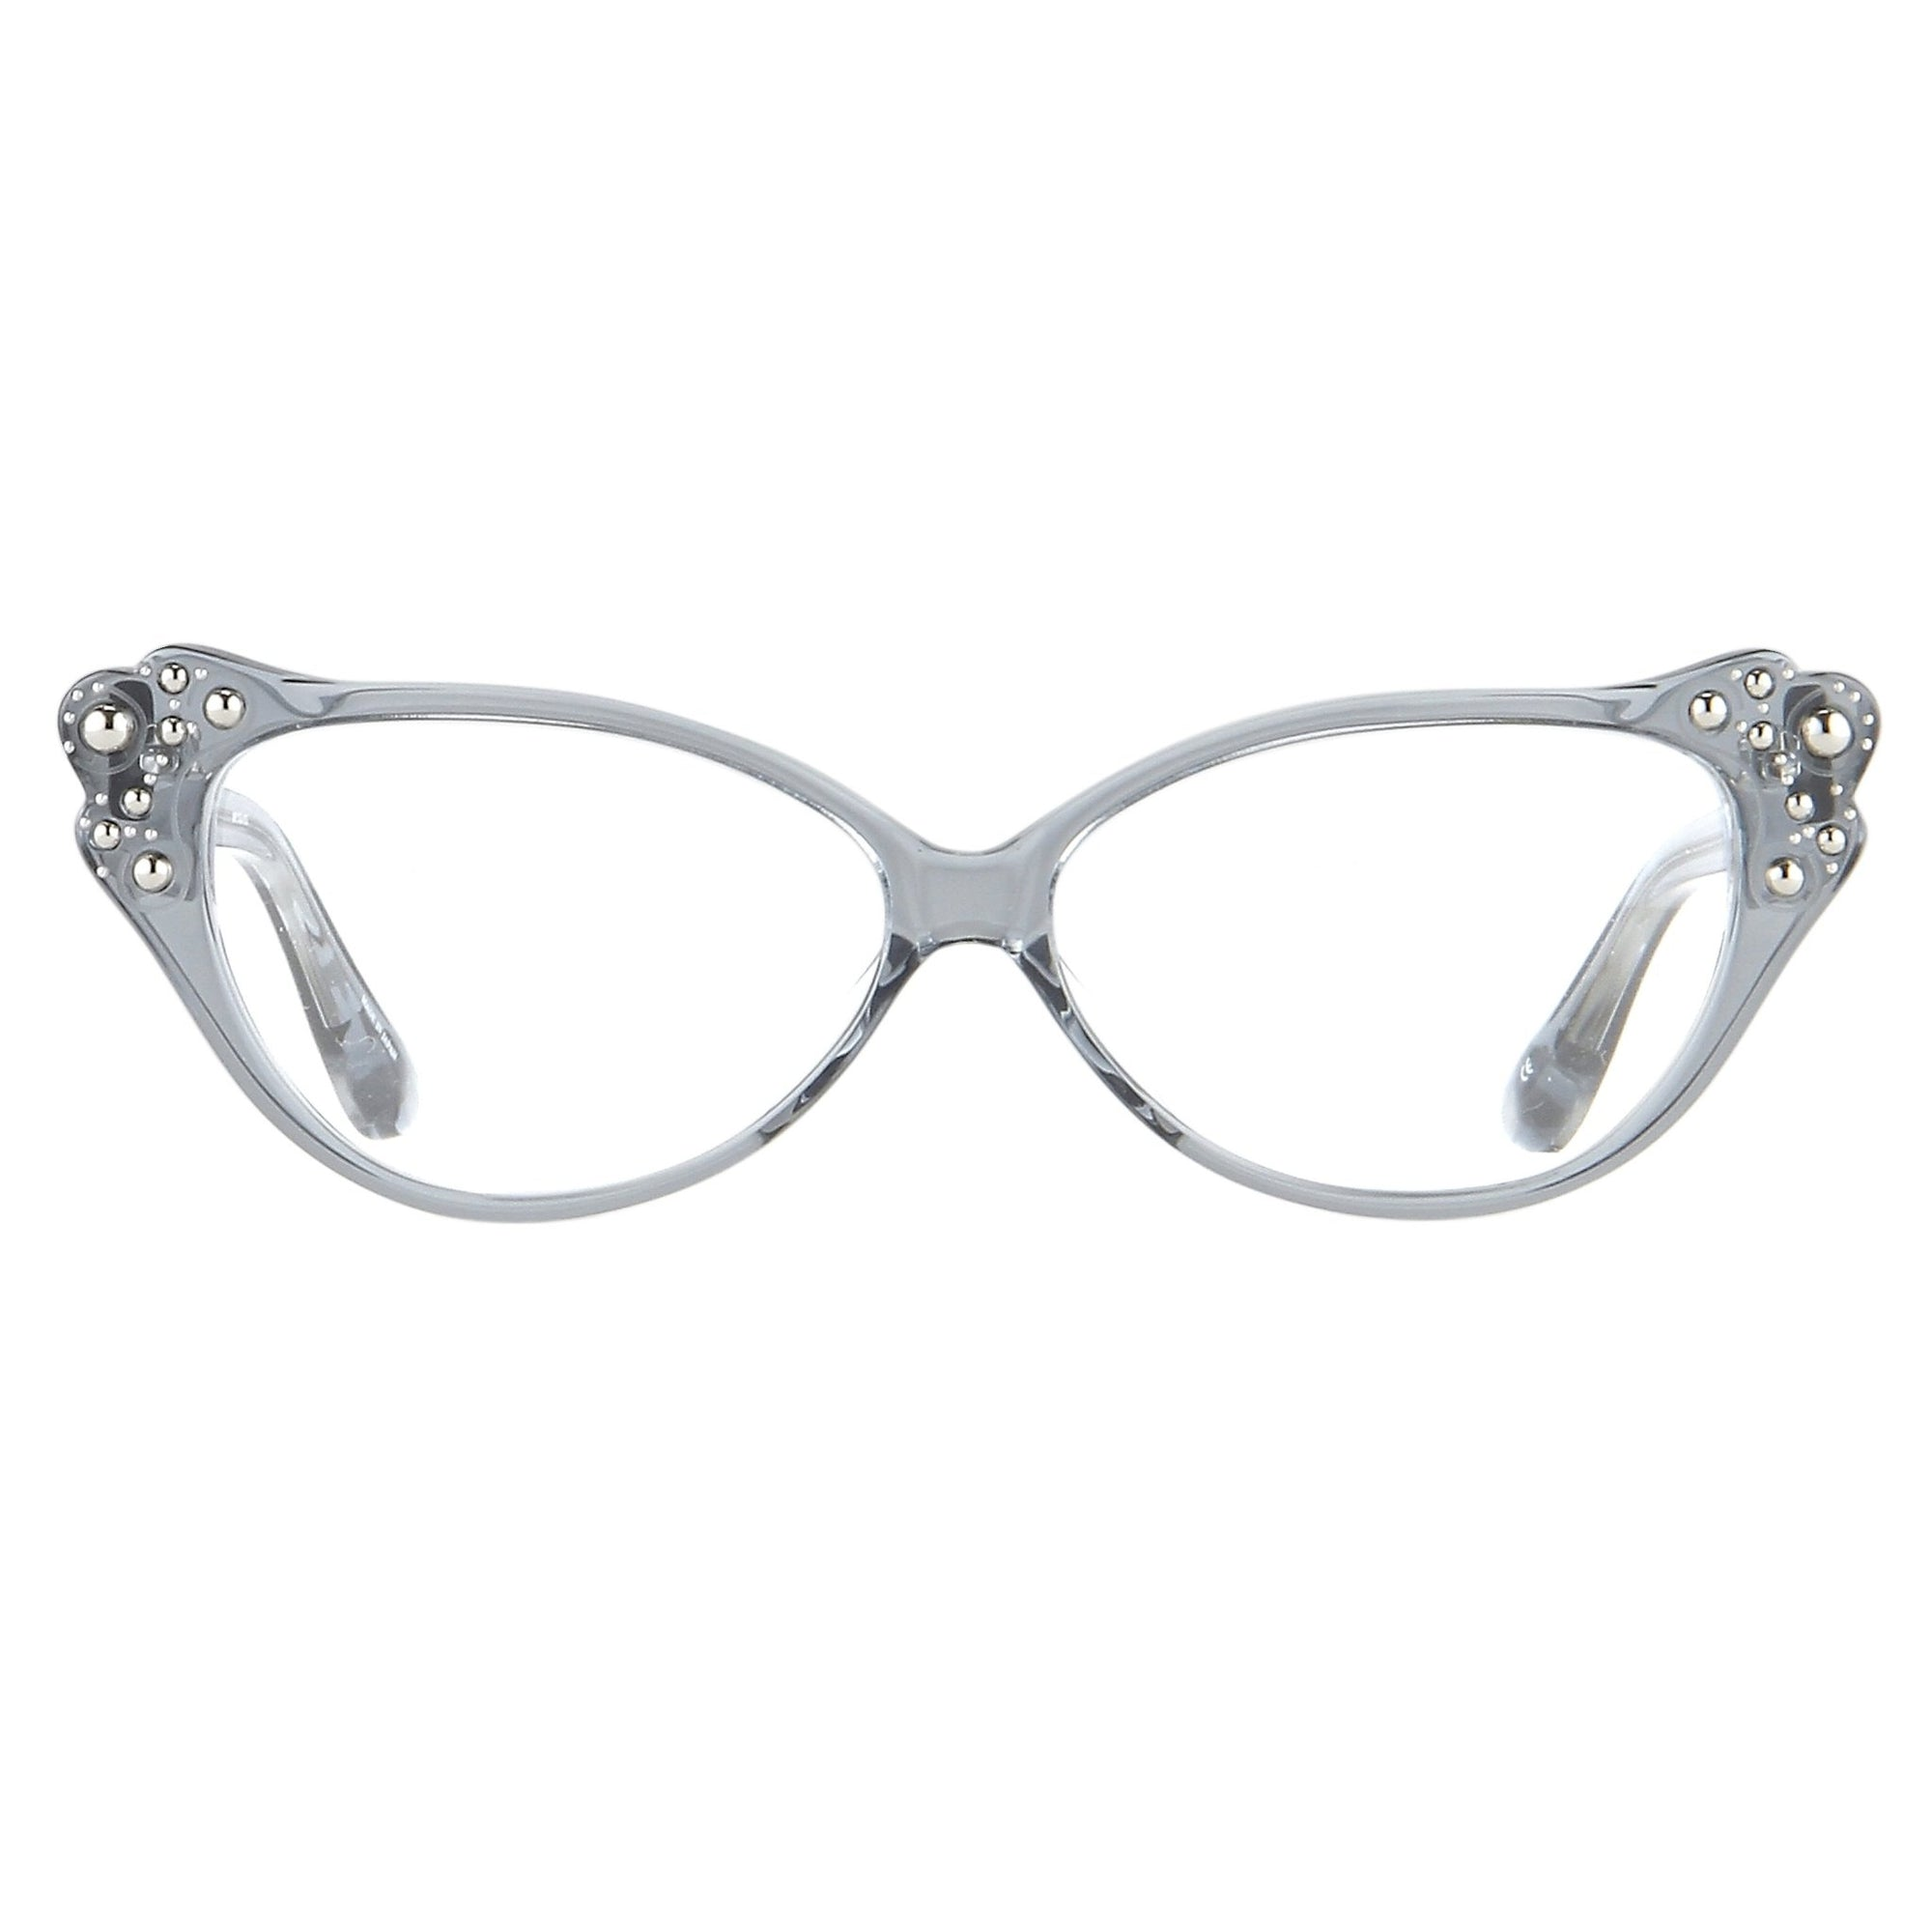 Agent Provocateur Eyeglasses Cat Eye Blue - Watches & Crystals